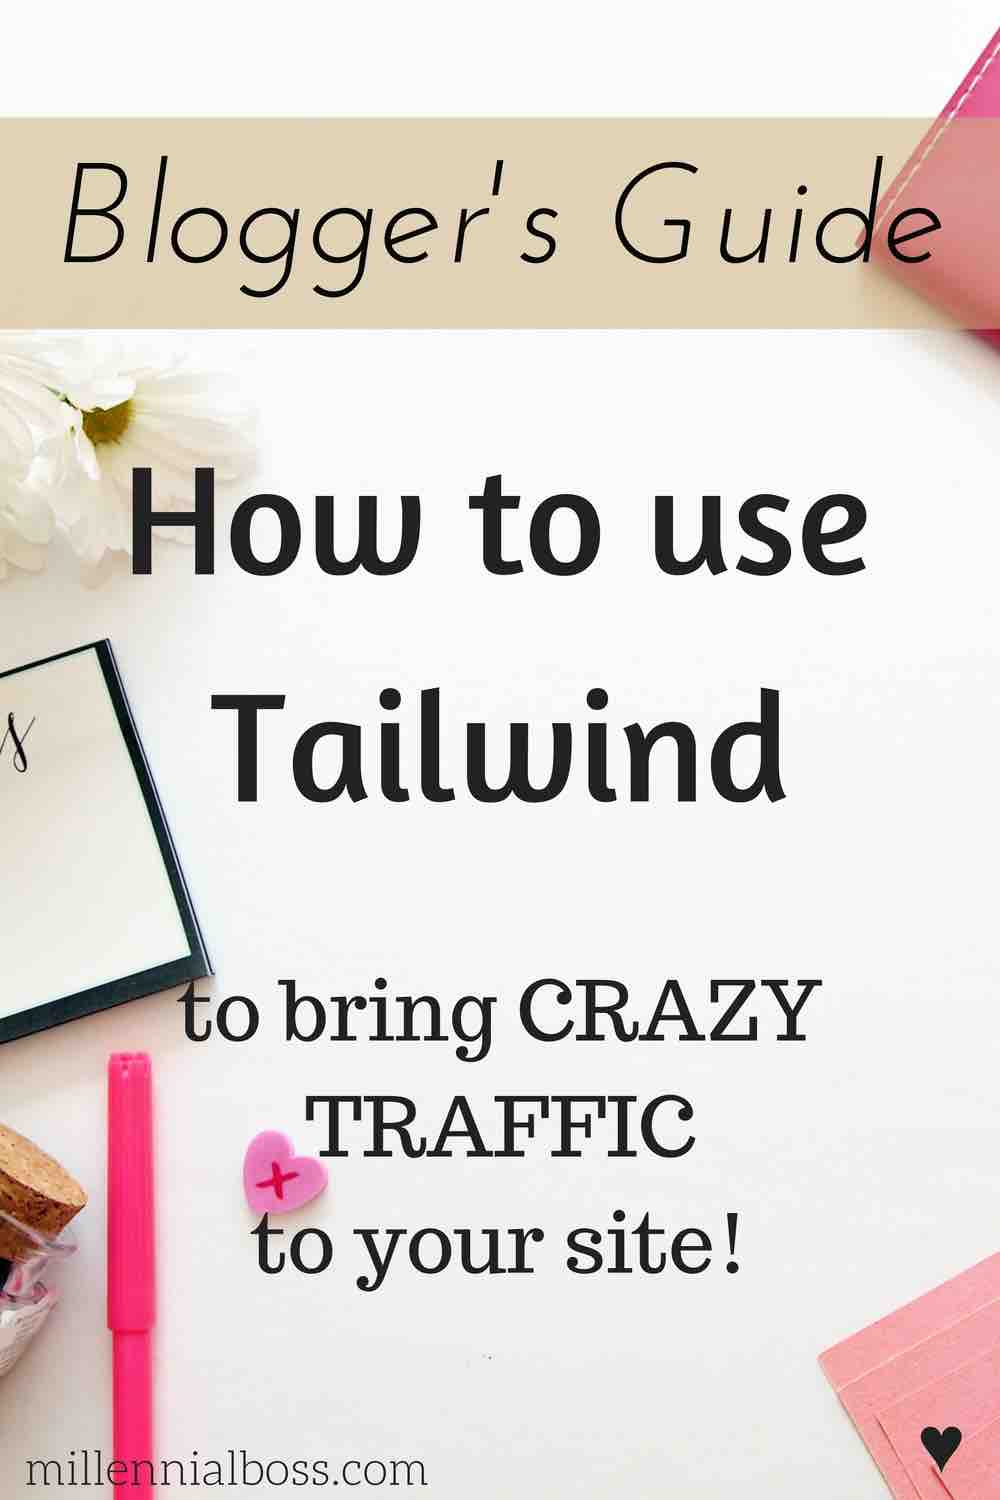 Love the screenshots in this post! Super helpful to anyone looking to use Tailwind to schedule their pins. Will totally save me time!